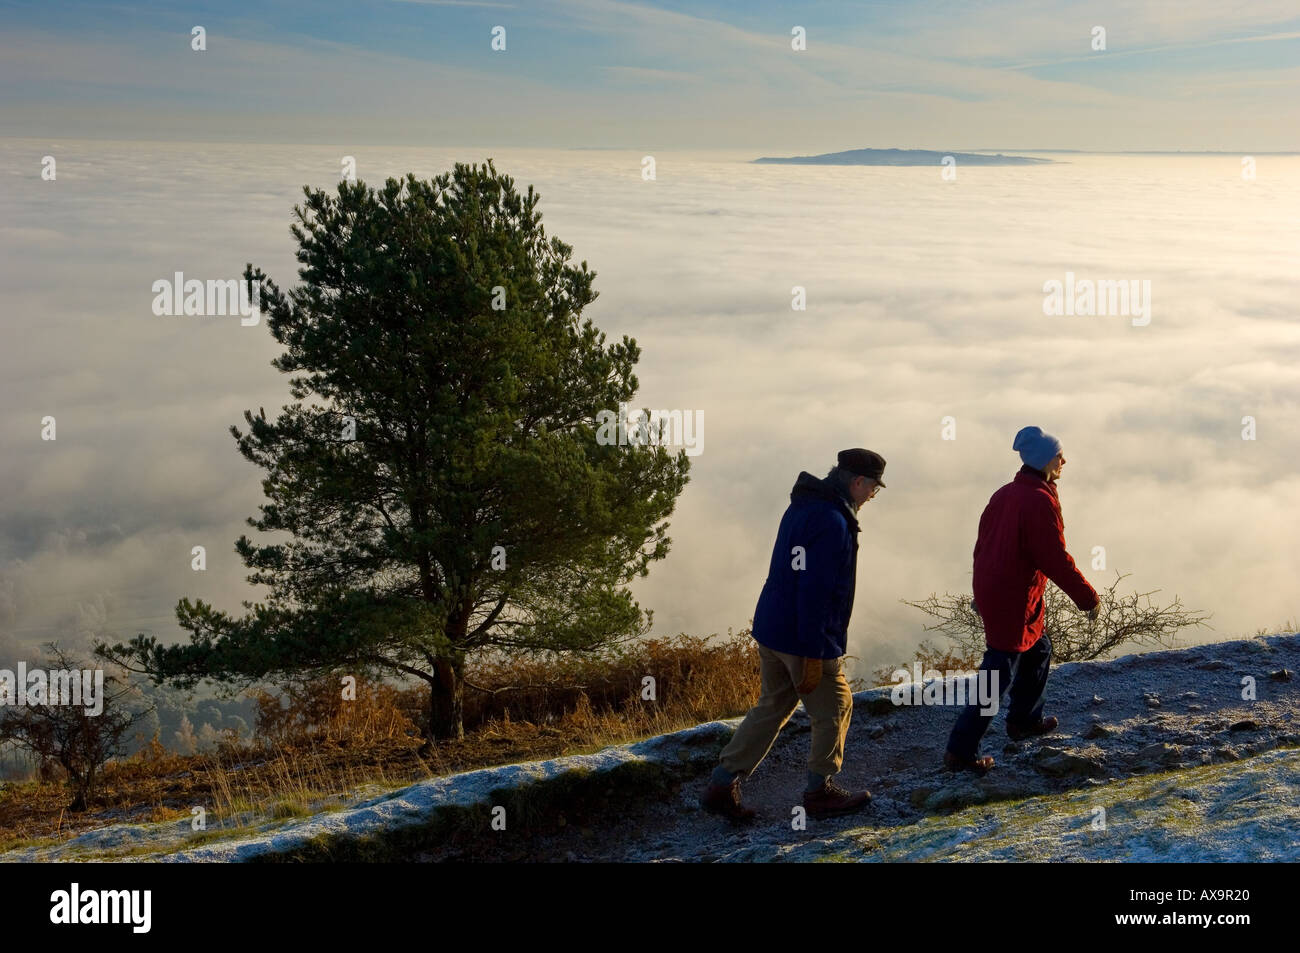 Walkers on the Malvern Hills shrouded in fog - Stock Image